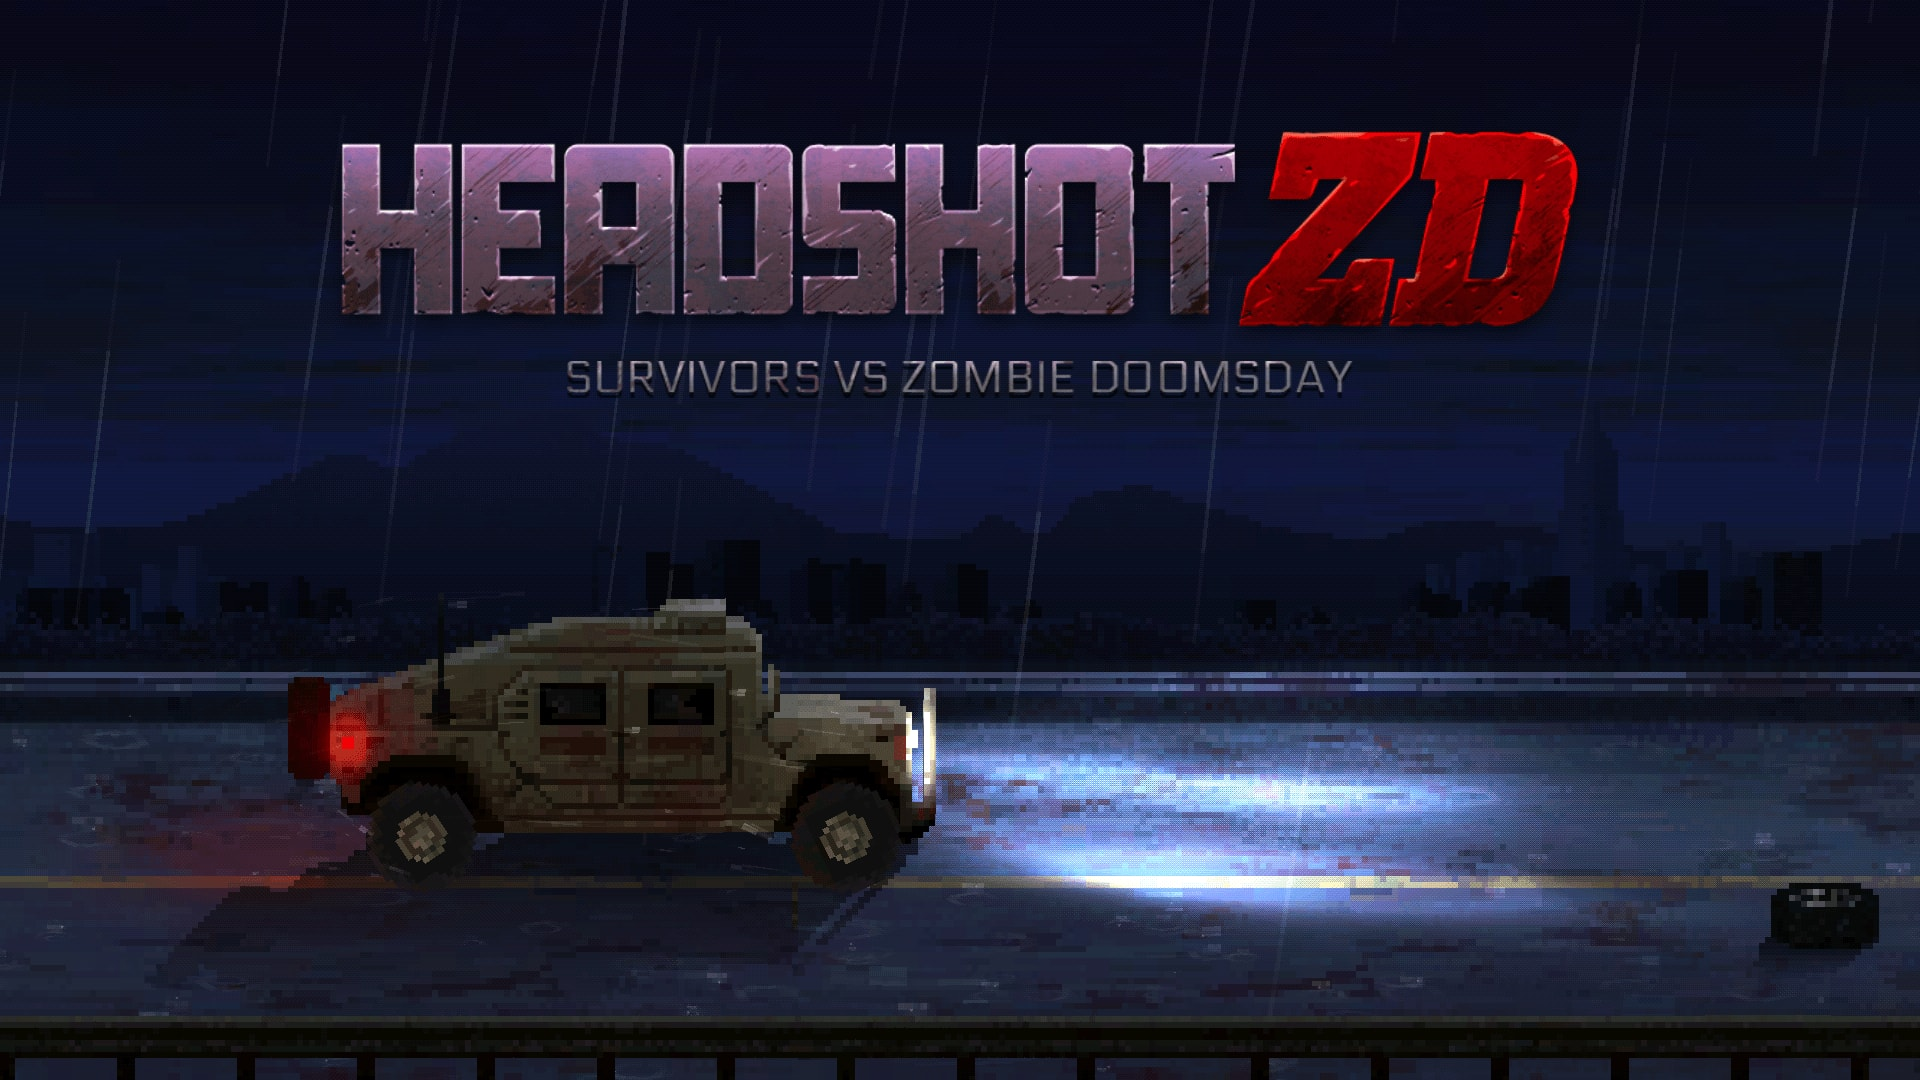 Headshot ZD: Survivors vs Zombie Doomsday